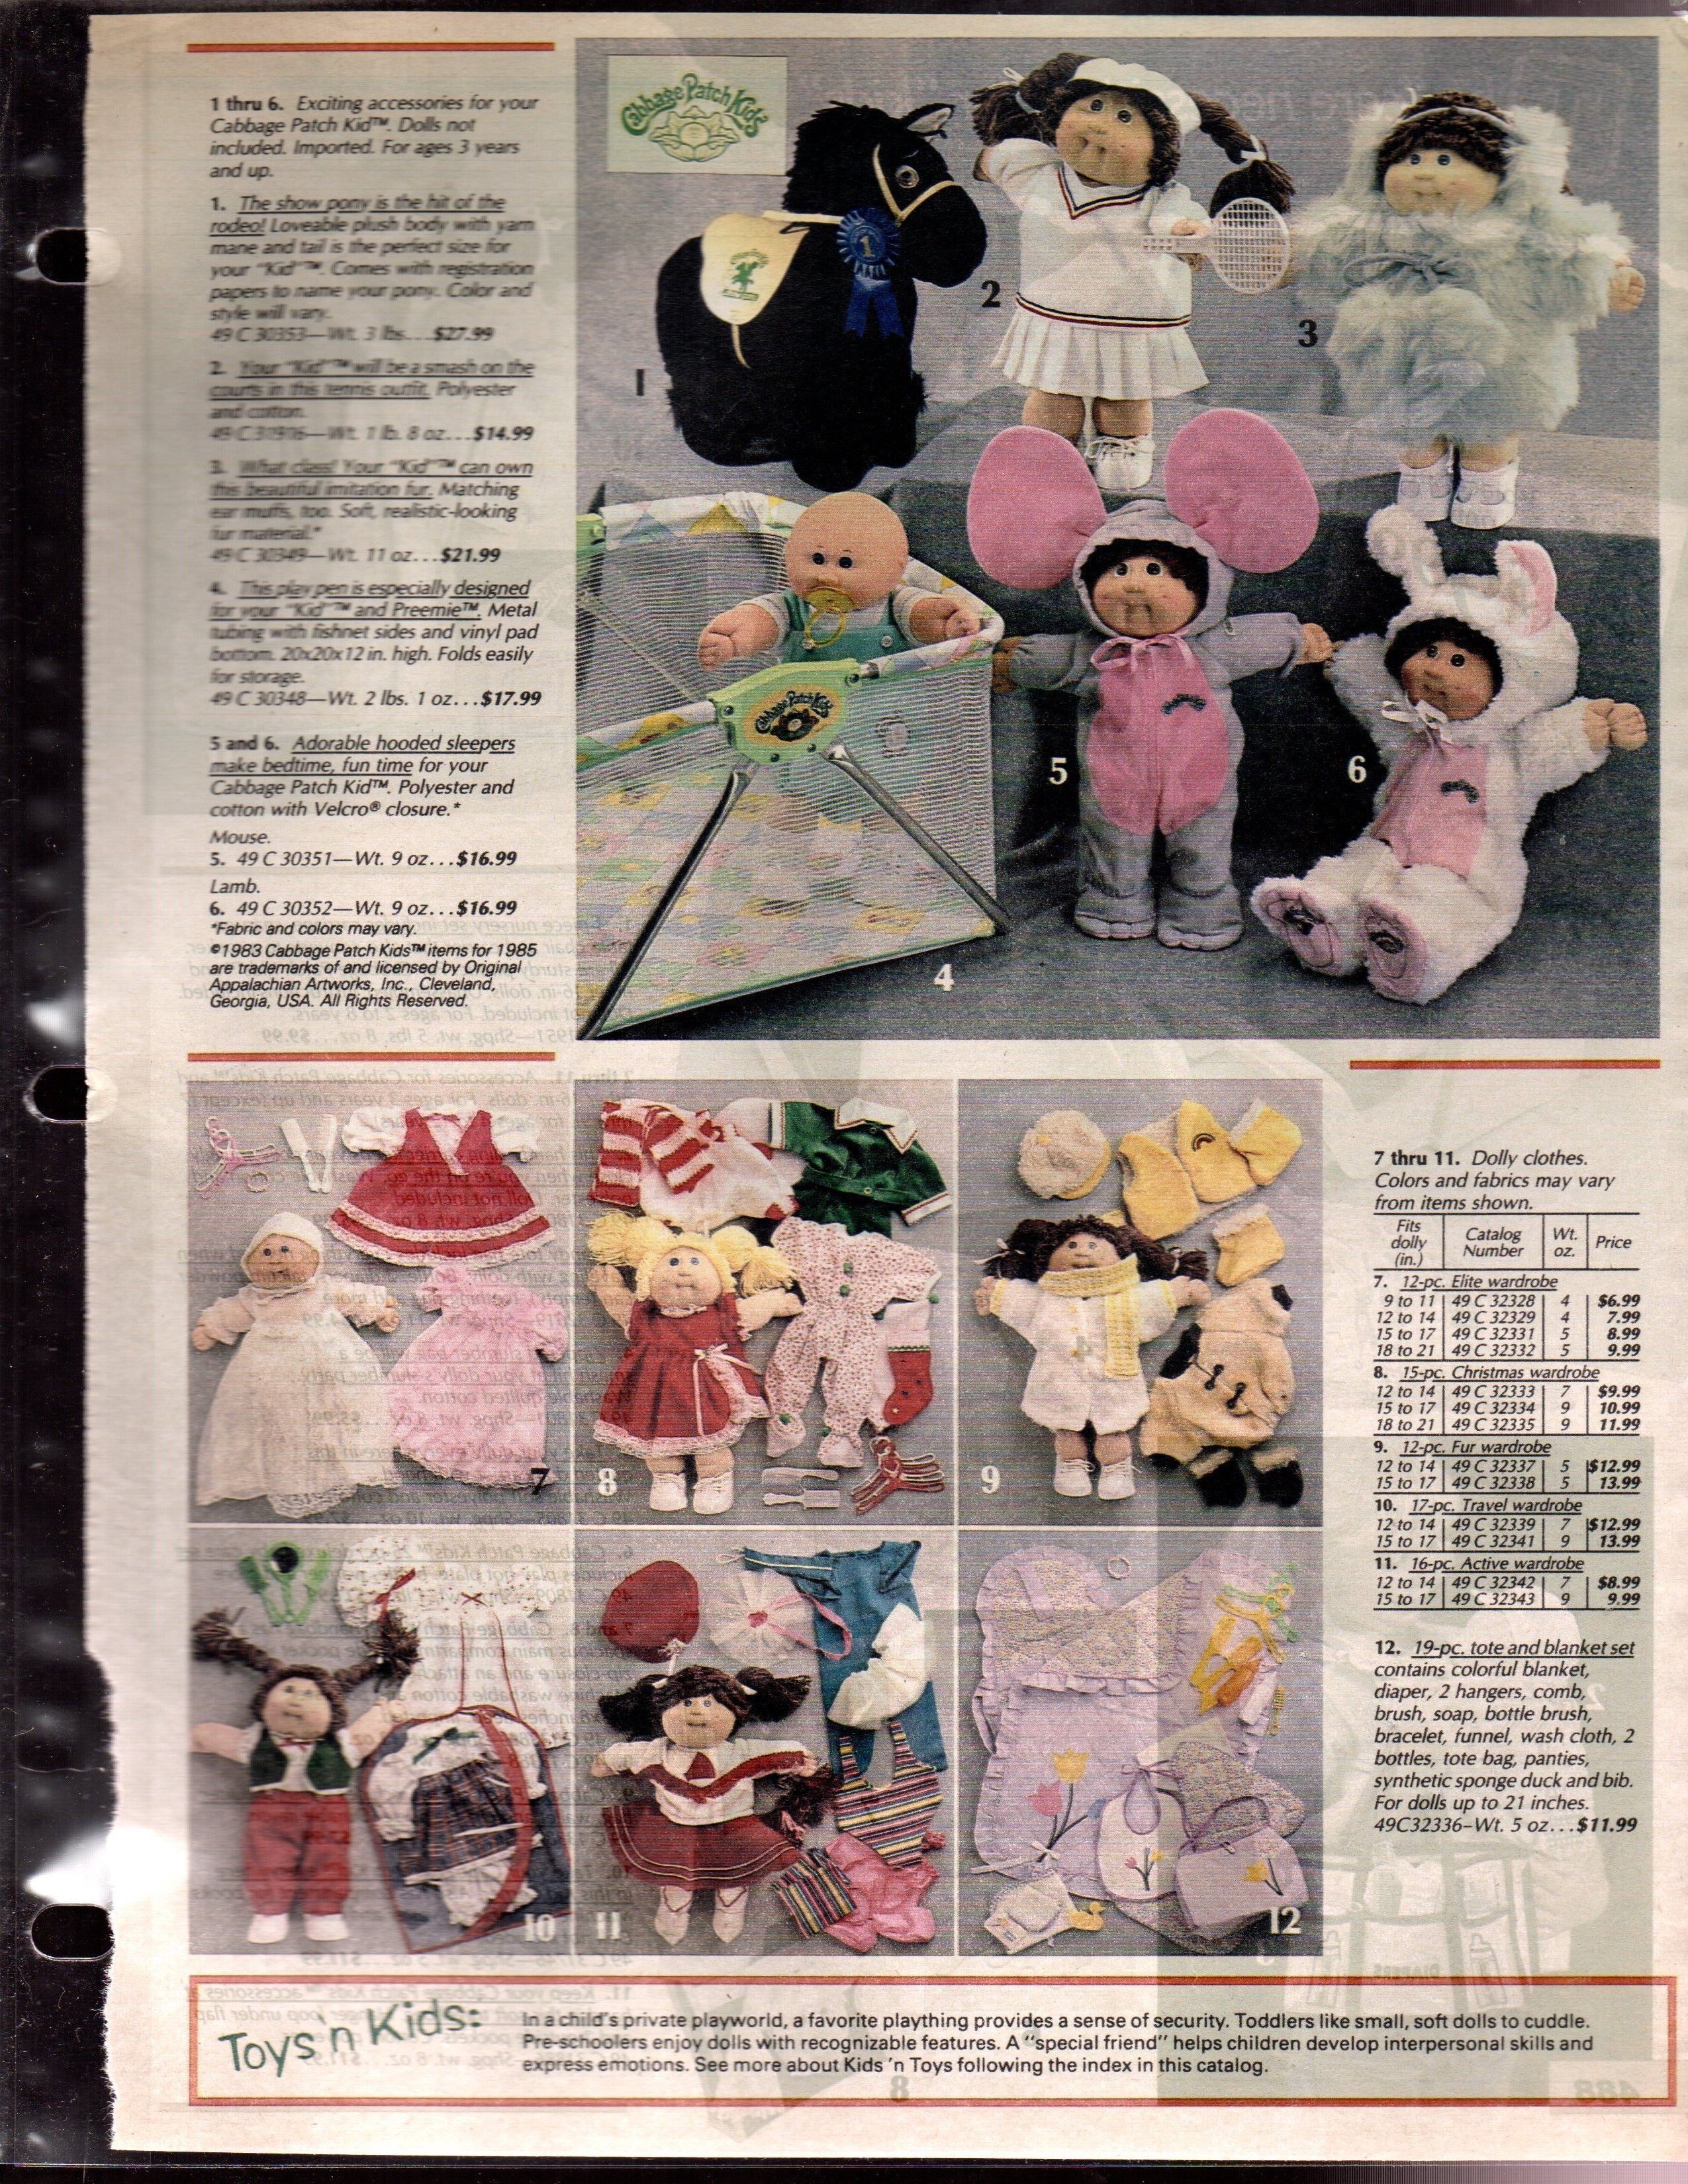 1985 Catalog Page P 487 Of Cabbage Patch Kids Cabbage Patch Kids Cabbage Patch Kids Shows